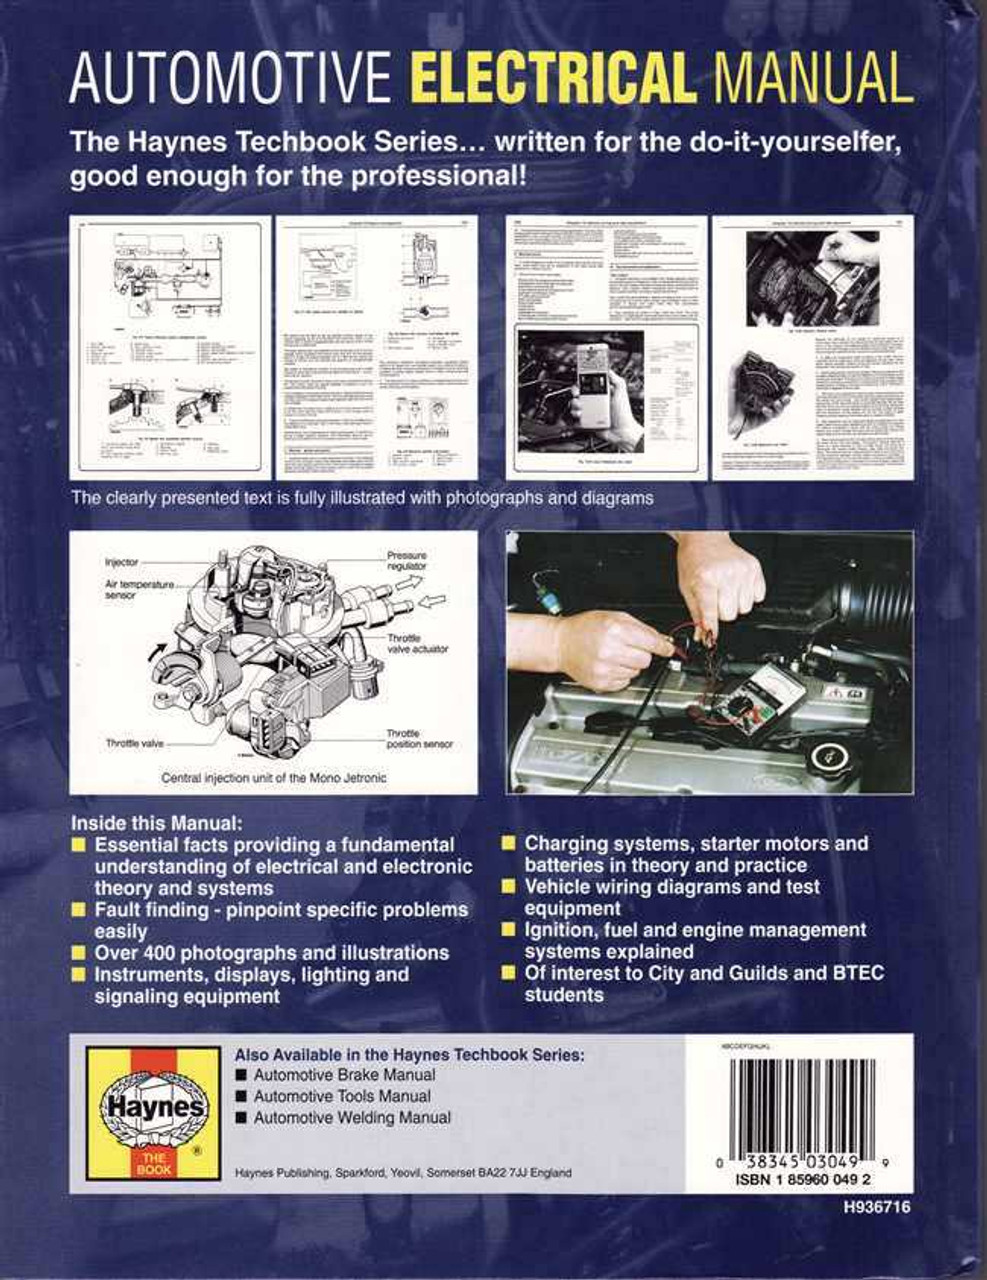 Automotive electrical and electronic systems manual publicscrutiny Image collections